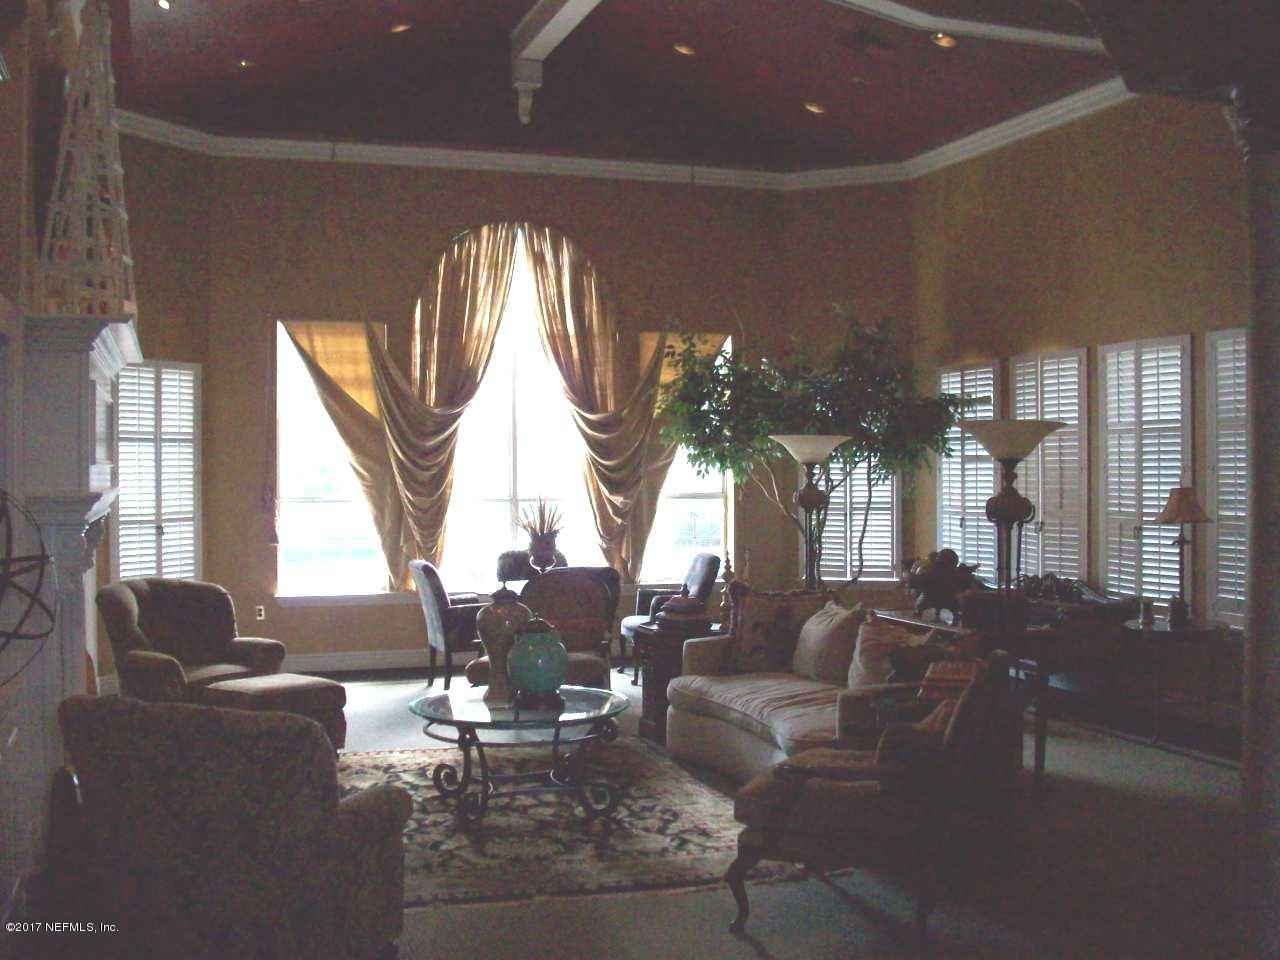 7800 POINT MEADOWS, JACKSONVILLE, FLORIDA 32256, 2 Bedrooms Bedrooms, ,2 BathroomsBathrooms,Rental,For Rent,POINT MEADOWS,1082674